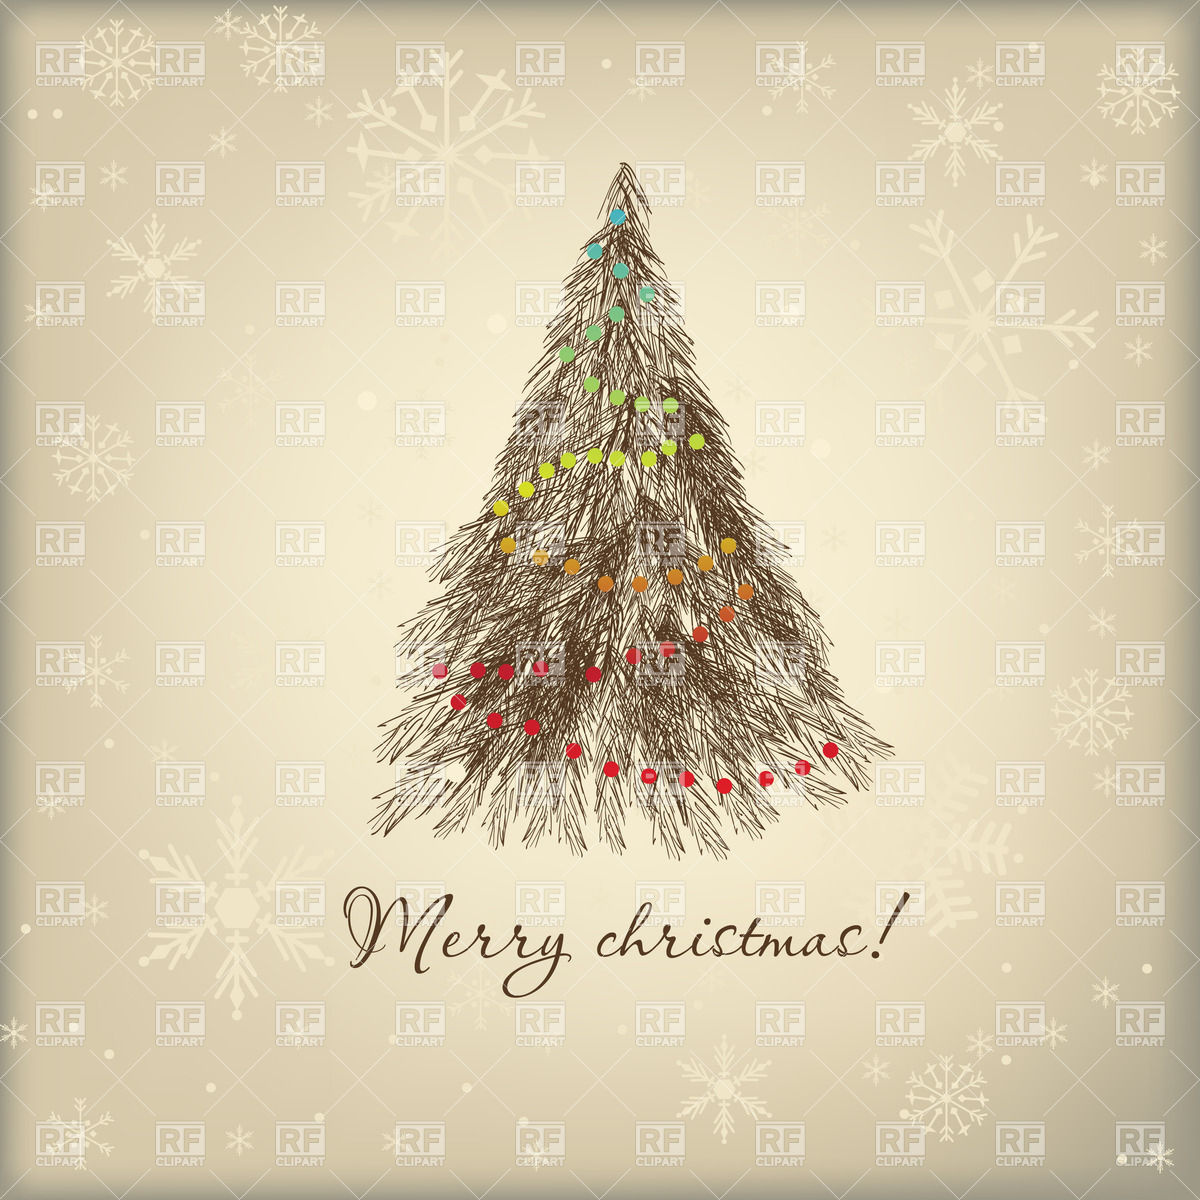 Christmas Tree clipart vintage Looking clipart vintage Christmas Stylized